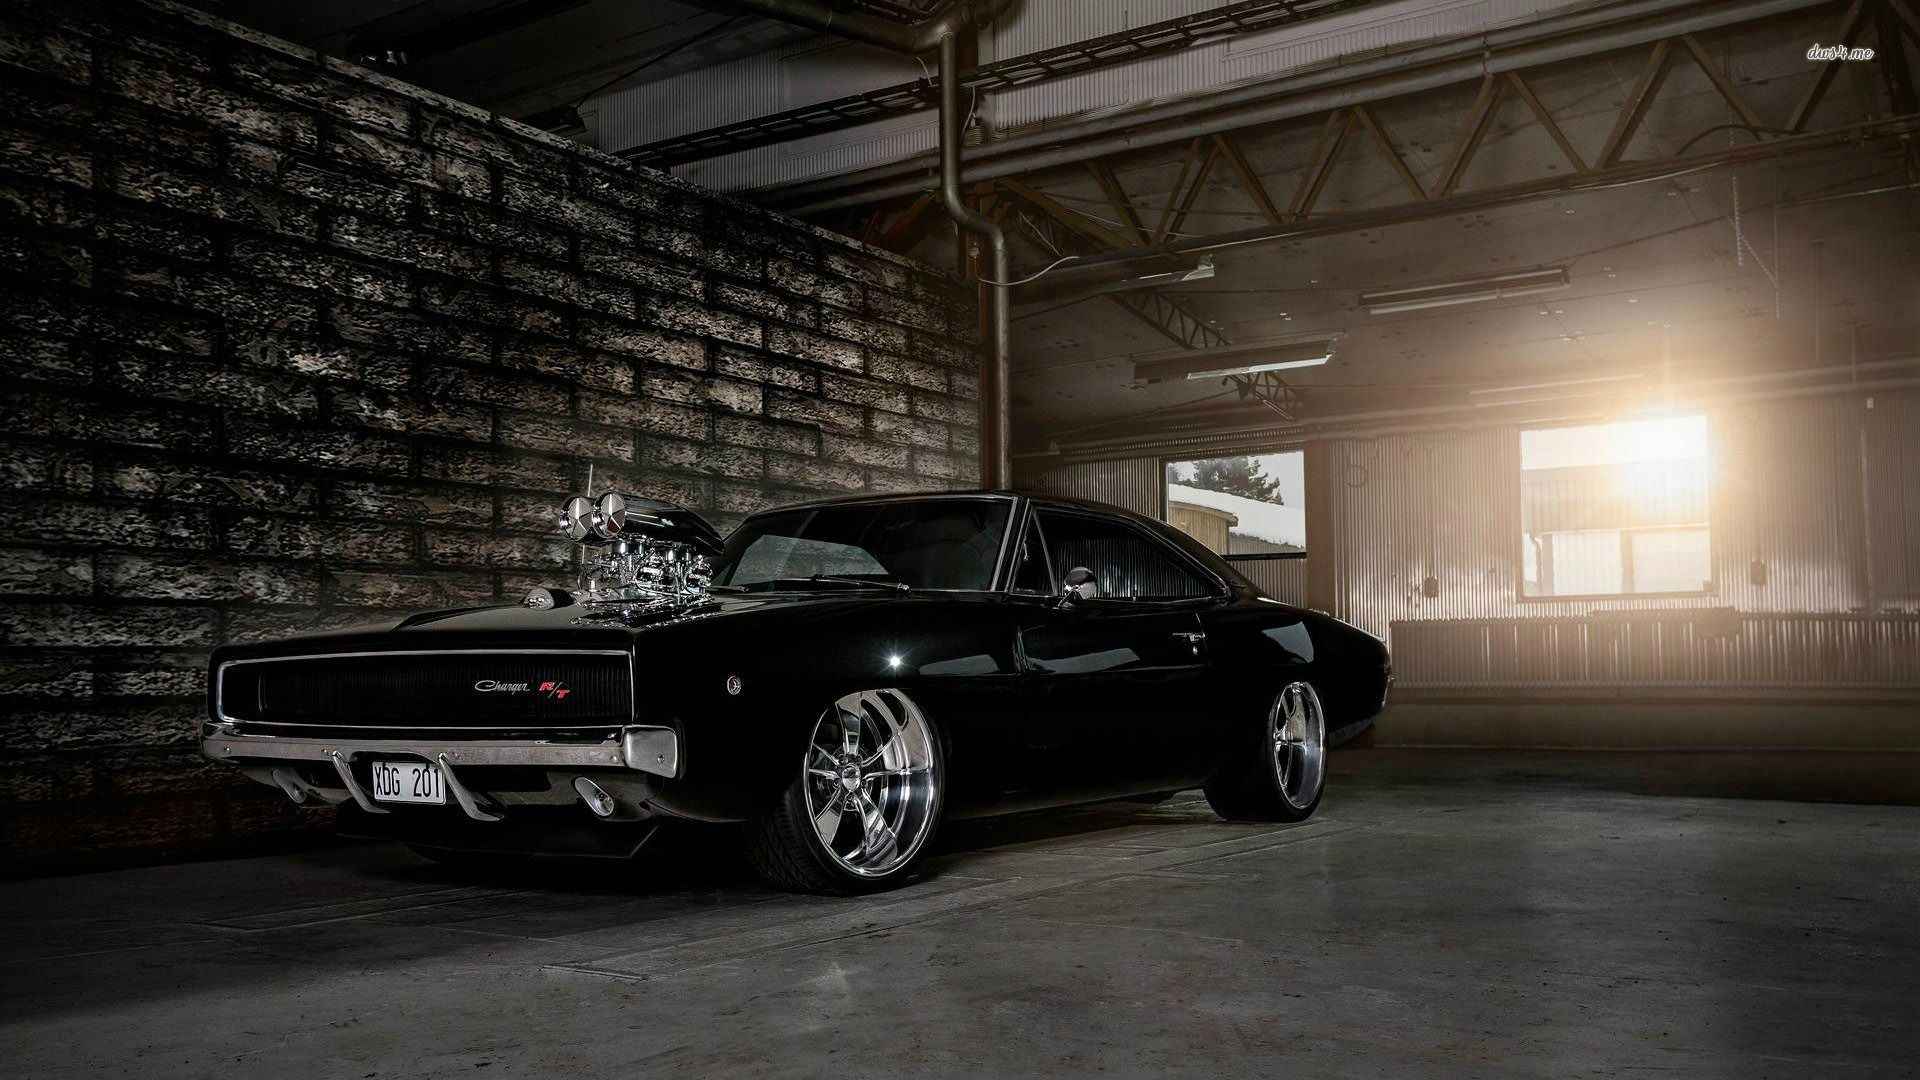 Dodge Charger Rt Chargers Coronets Super Bees Pinterest